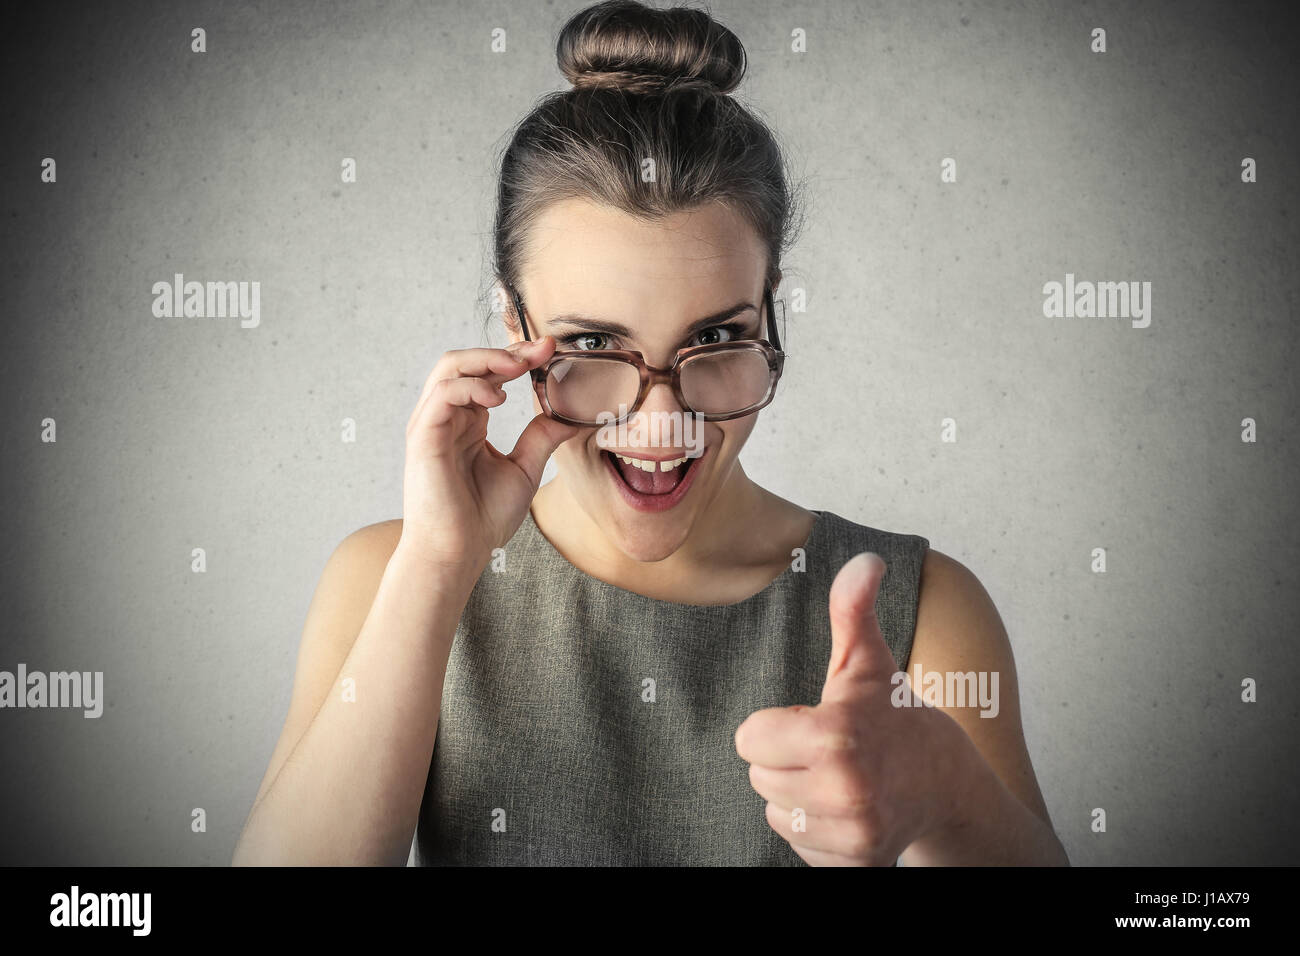 Brunette woman showing like sign - Stock Image